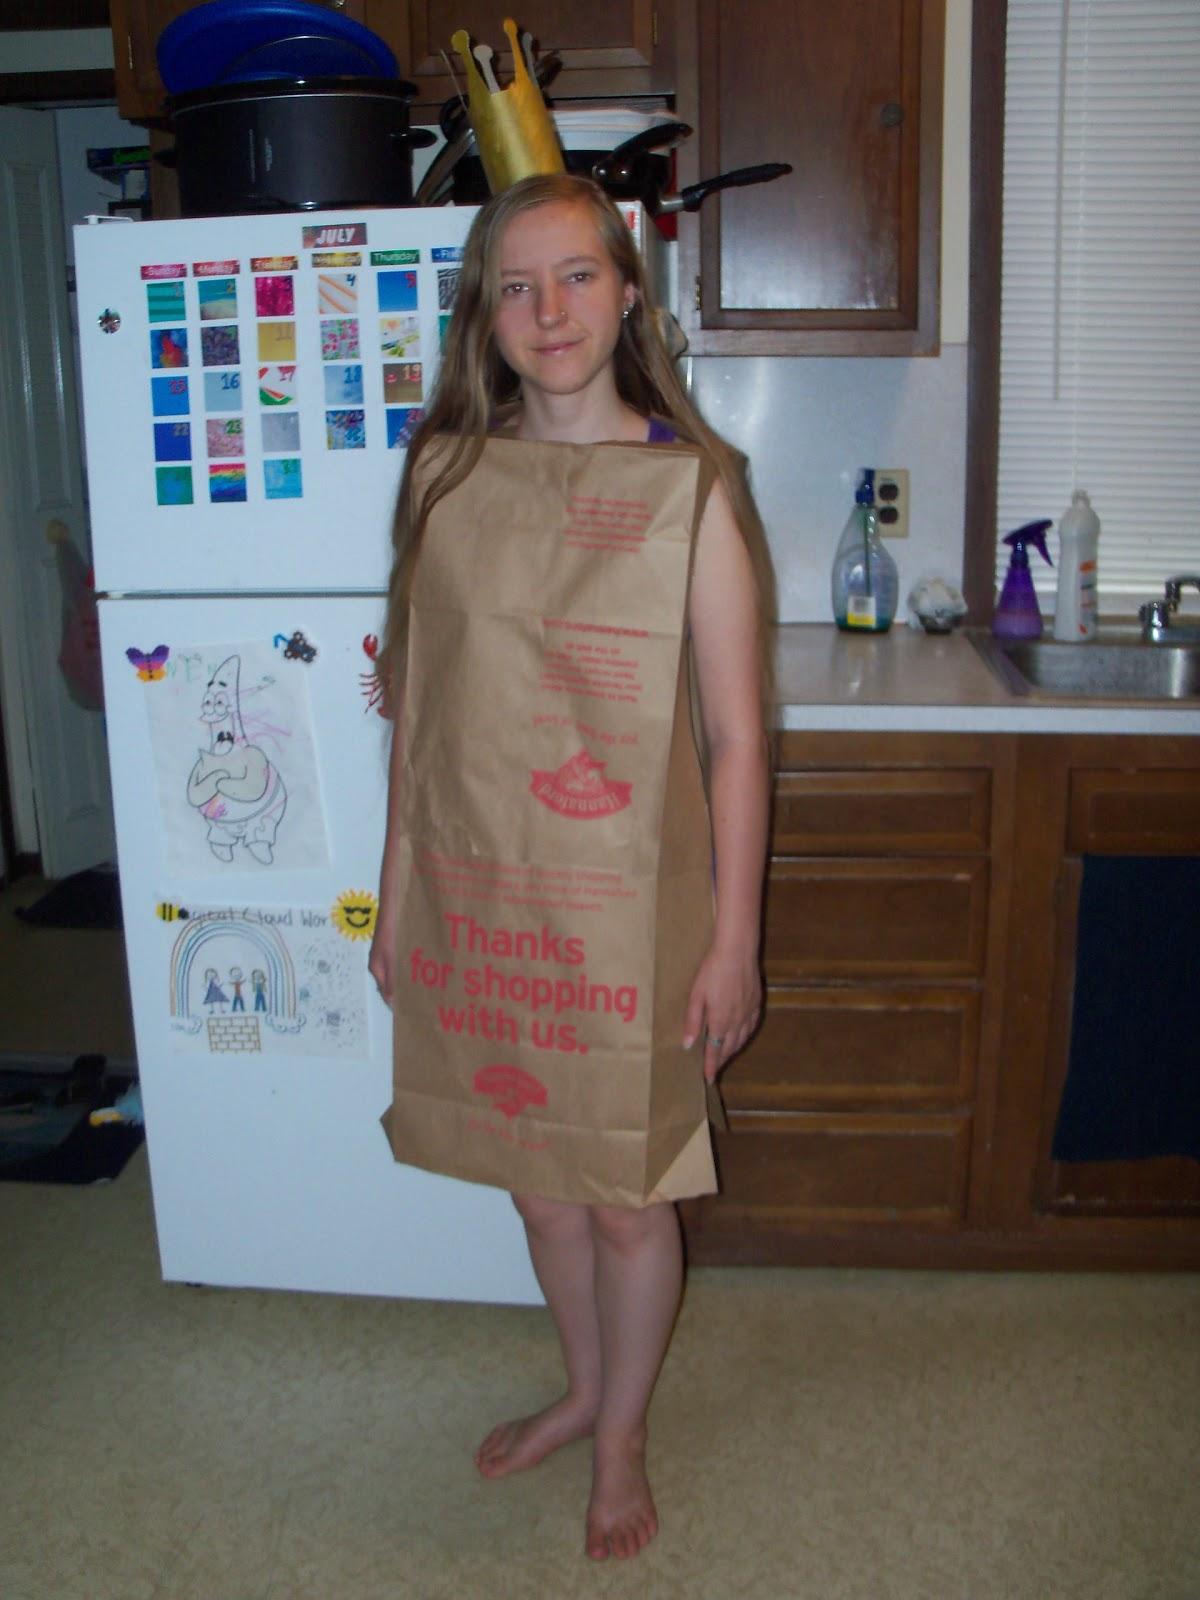 Ambers craft a week blog three cheap and easy halloween costume ideas three cheap and easy halloween costume ideas solutioingenieria Image collections